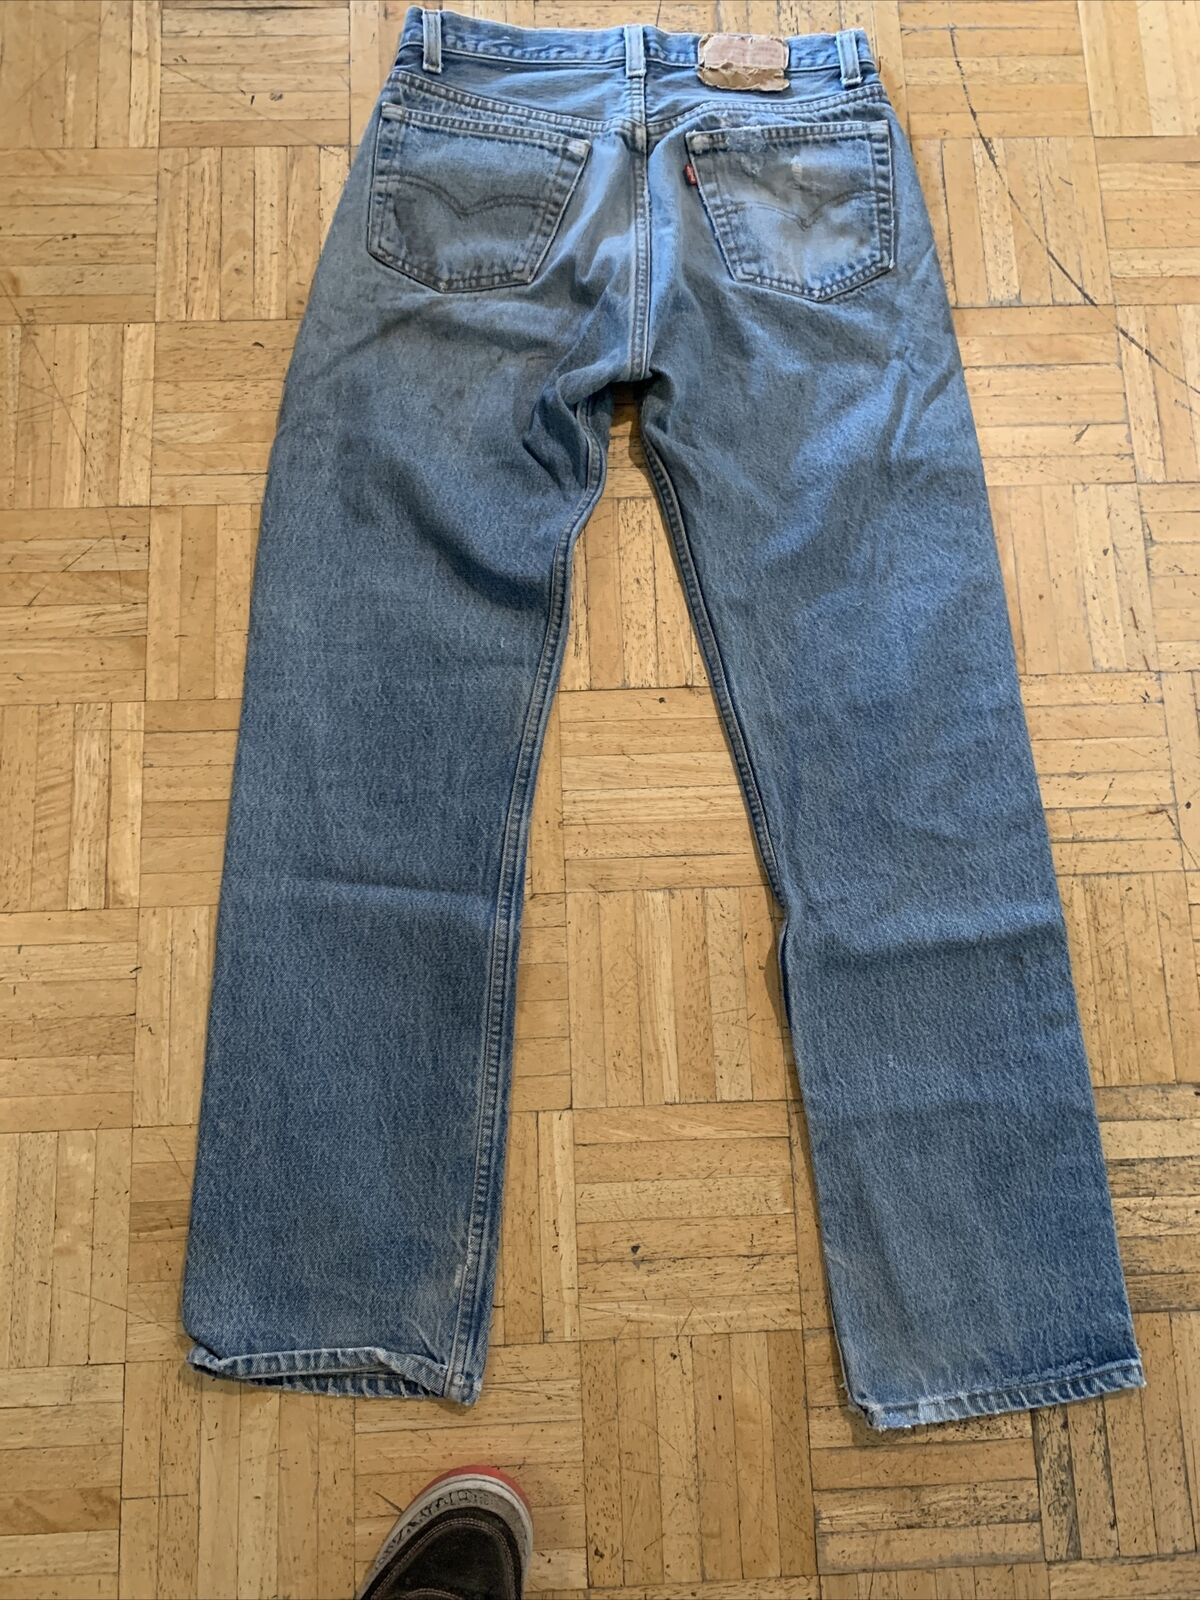 vtg levis 501 made in usa (9) - image 5